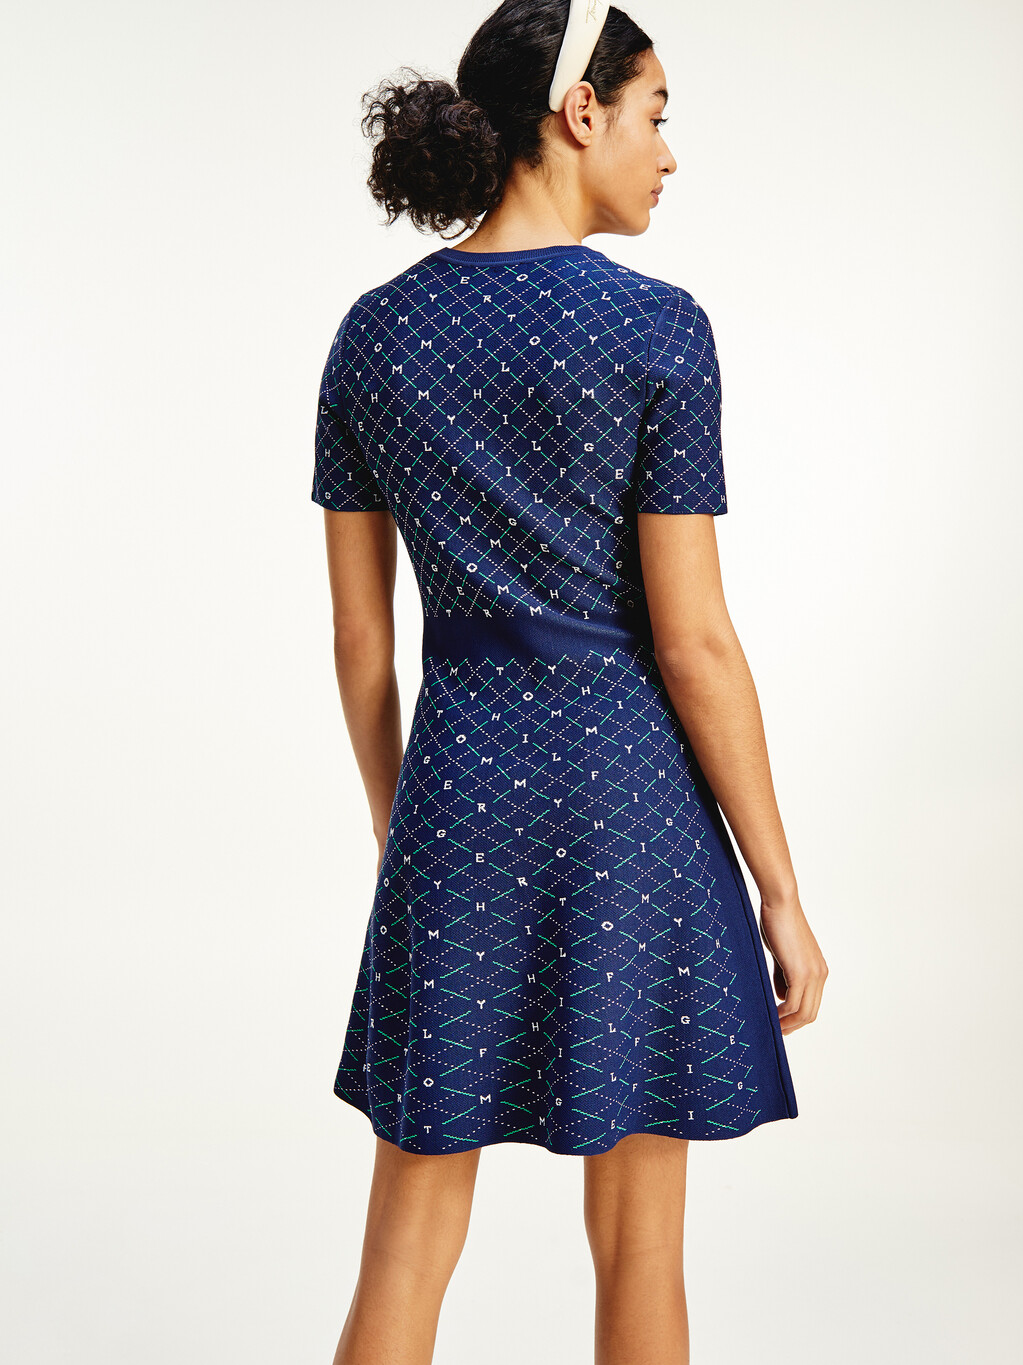 Argyle Fit and Flare Short Dress